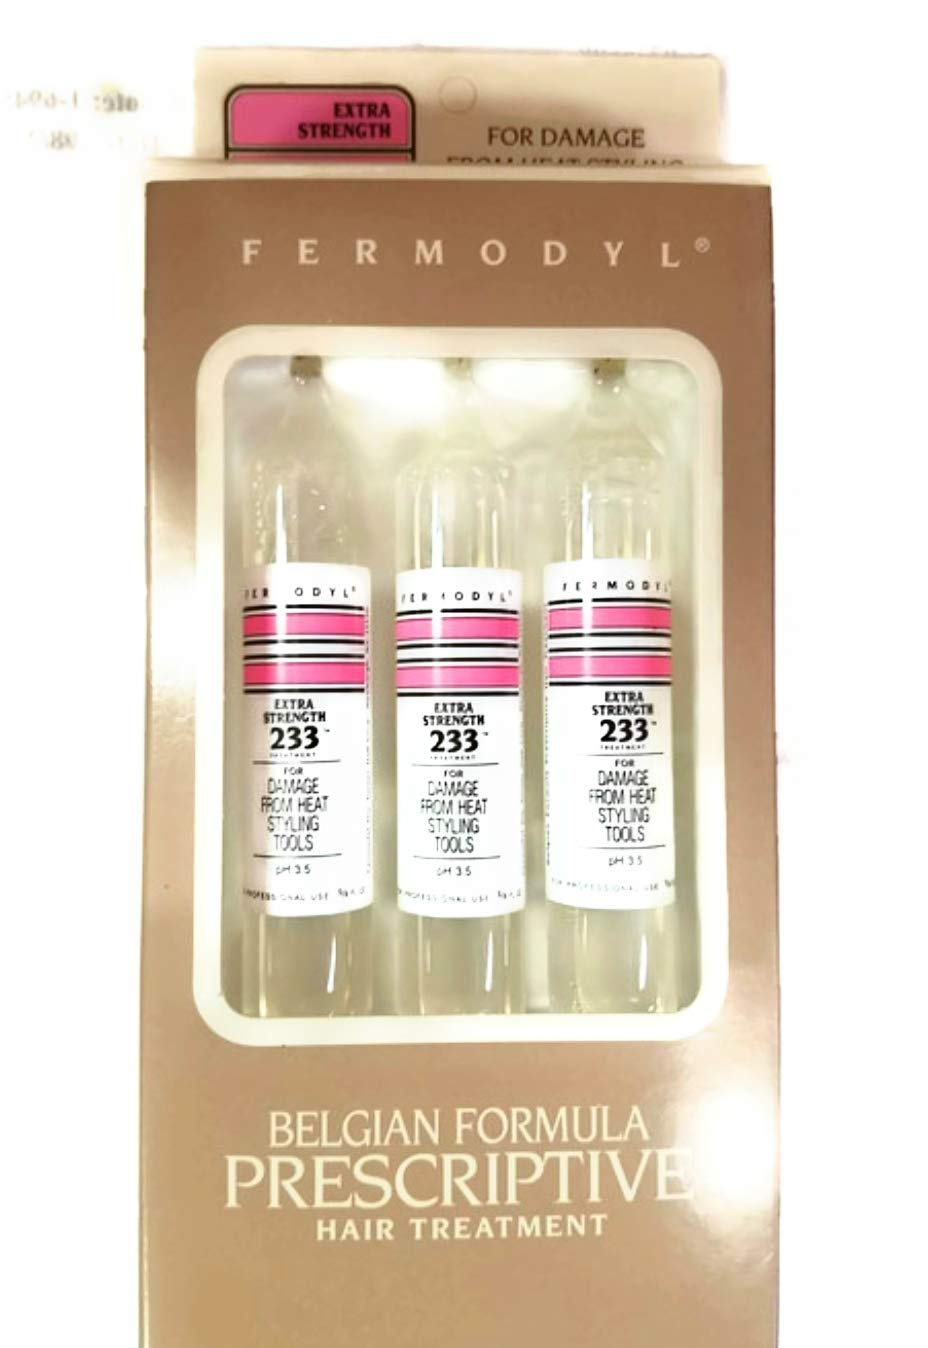 FERMODYL Extra Strength 233 Treatment - Belgian Formula Prescriptive Hair Treatment - for damage from heat styling tools, color, bleach, or relaxer. 5/8 Fl Oz Vials - 3 Pack by Fermodyl